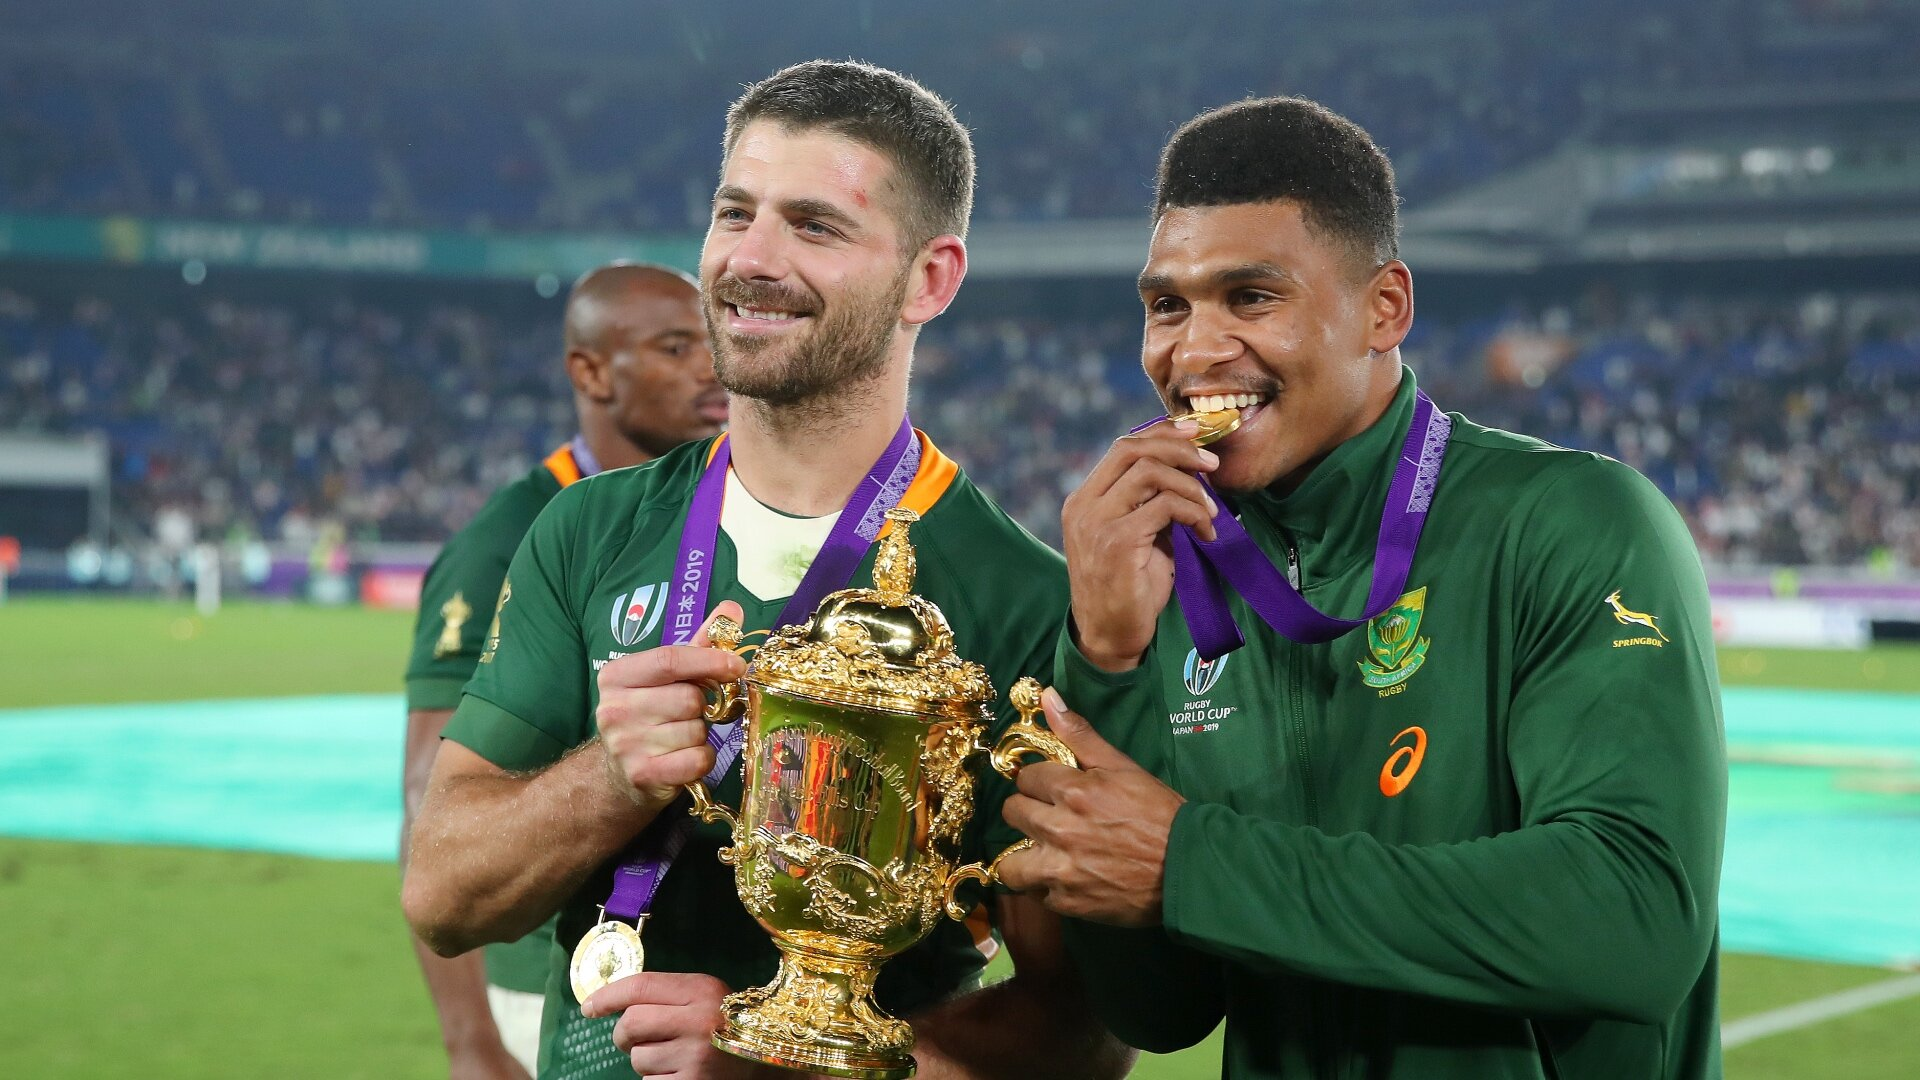 The Future of Rugby: South Africa U23